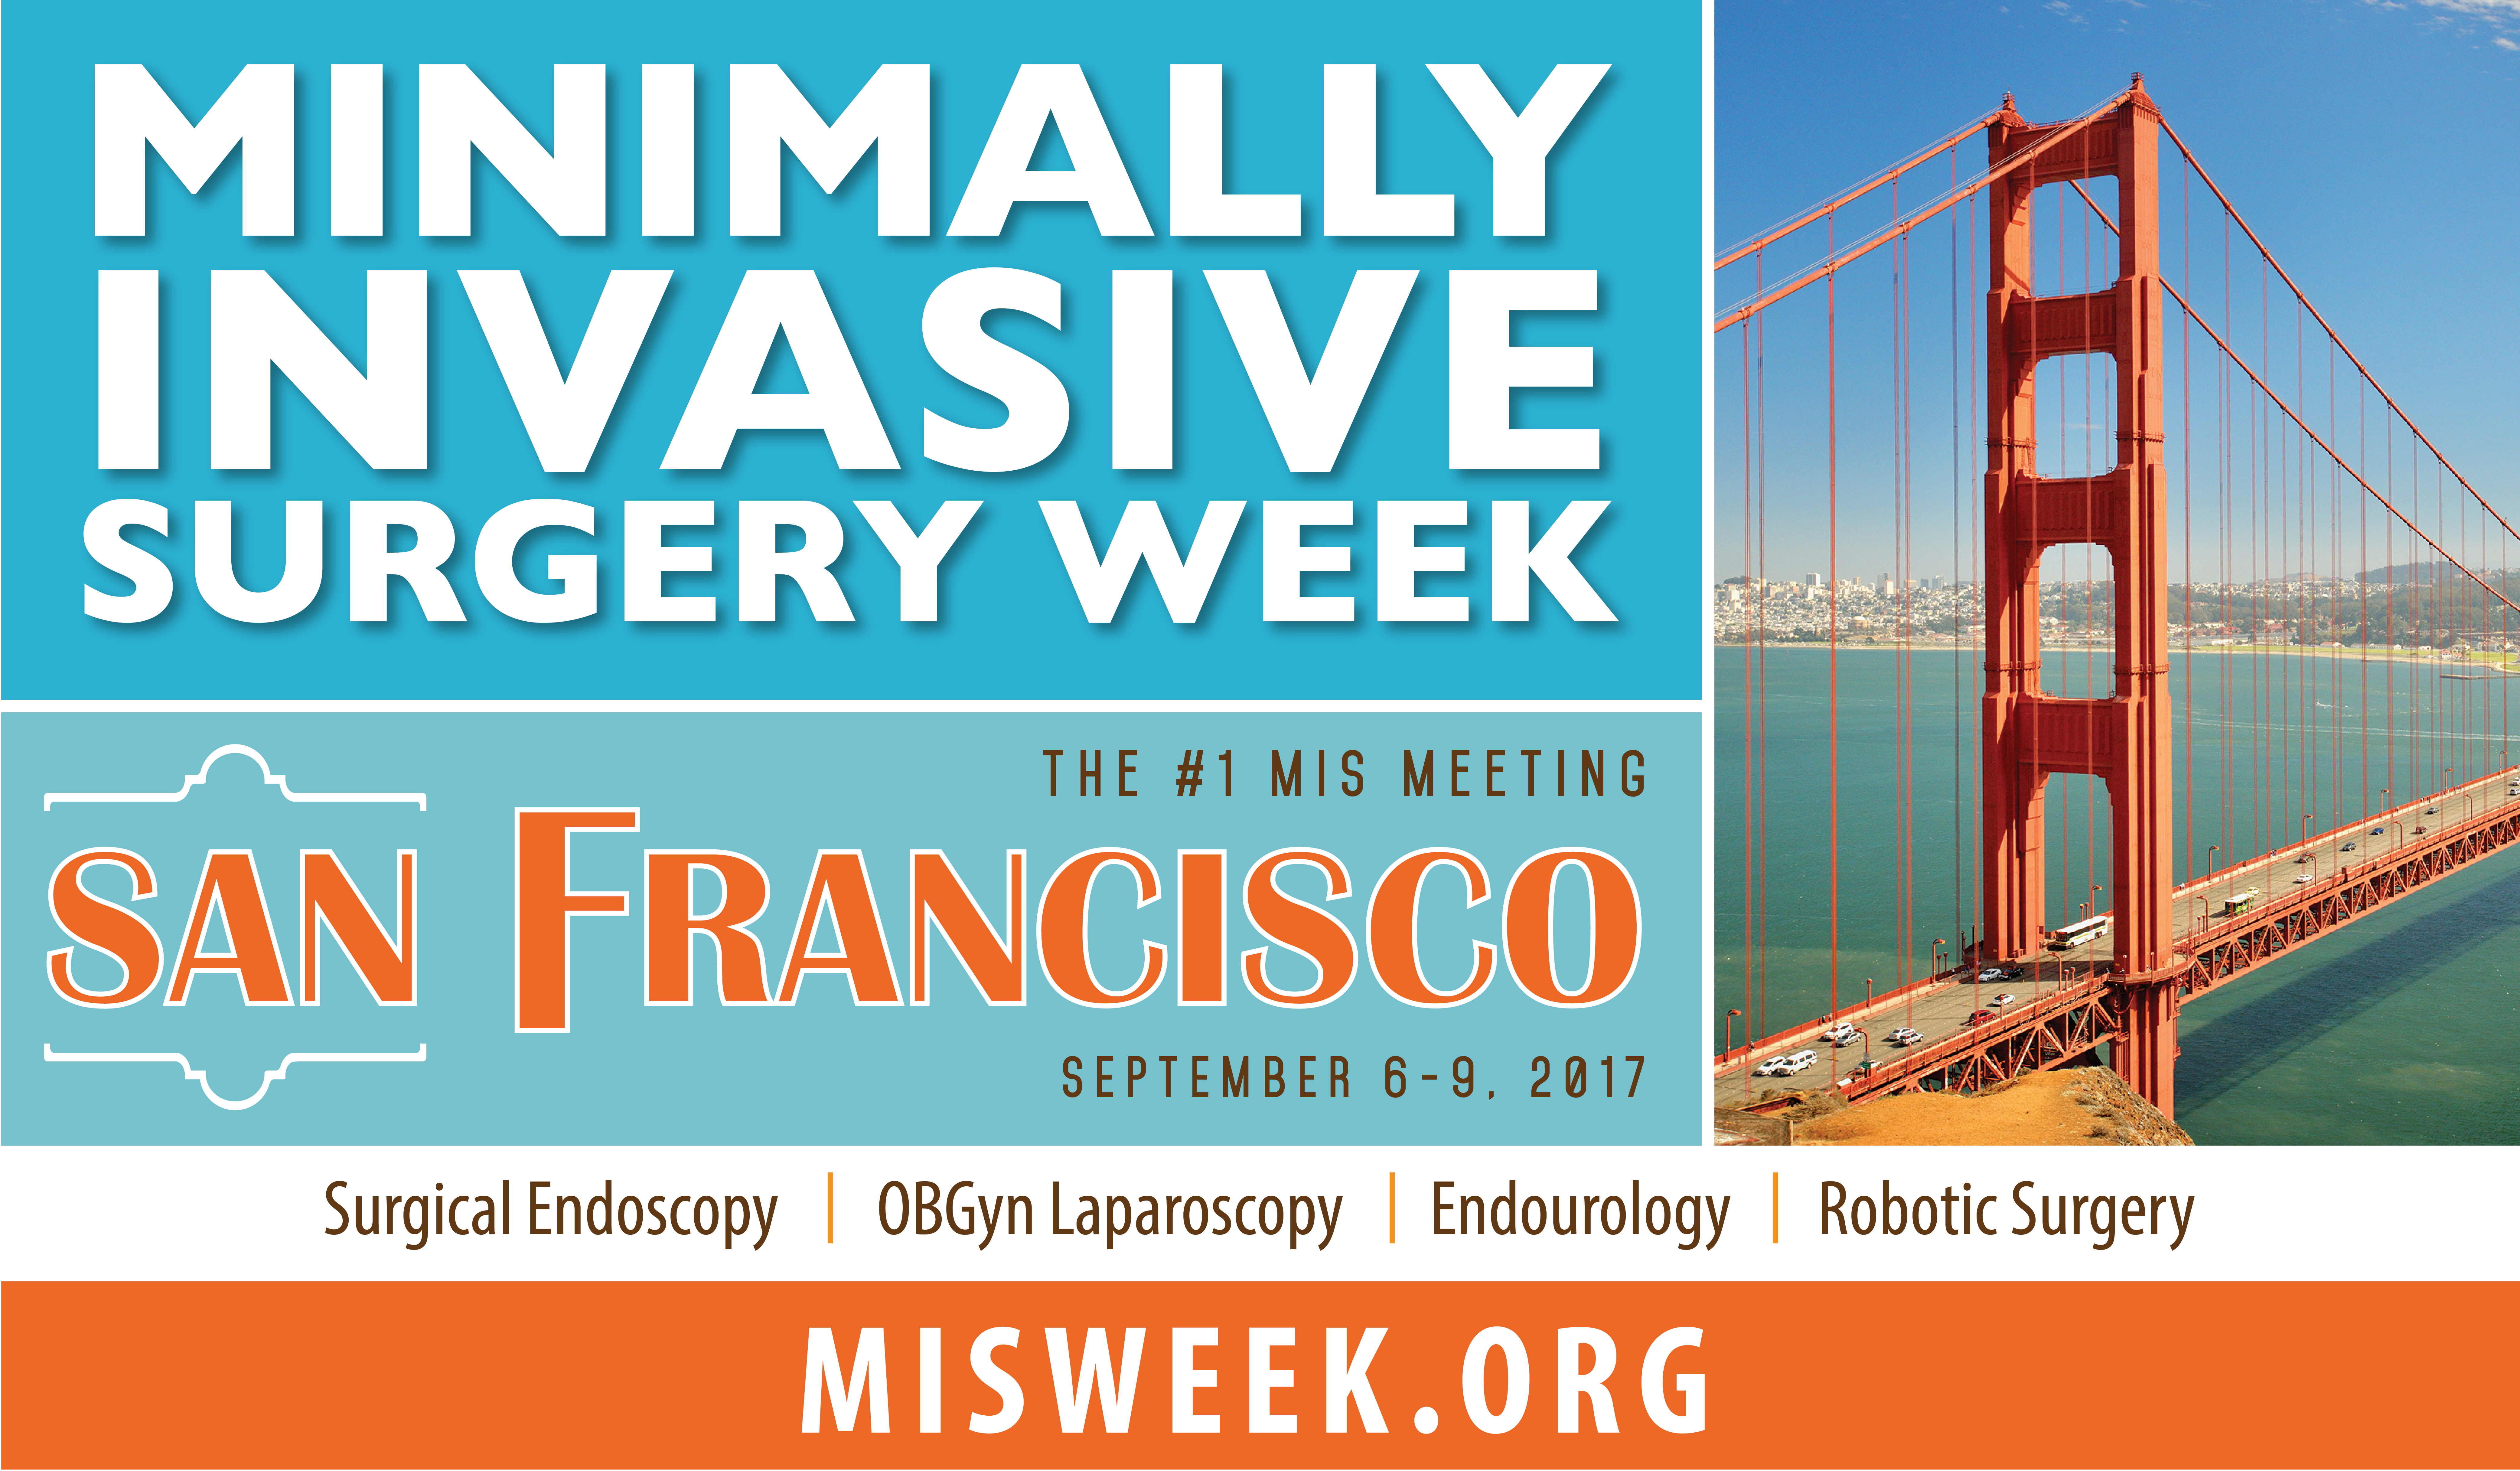 ... and proceedings including educational materials and podcasts of the MISWeek, The#1 MIS Meeting, Minimally Invasive Surgery Week and SLS Annual Meeting.